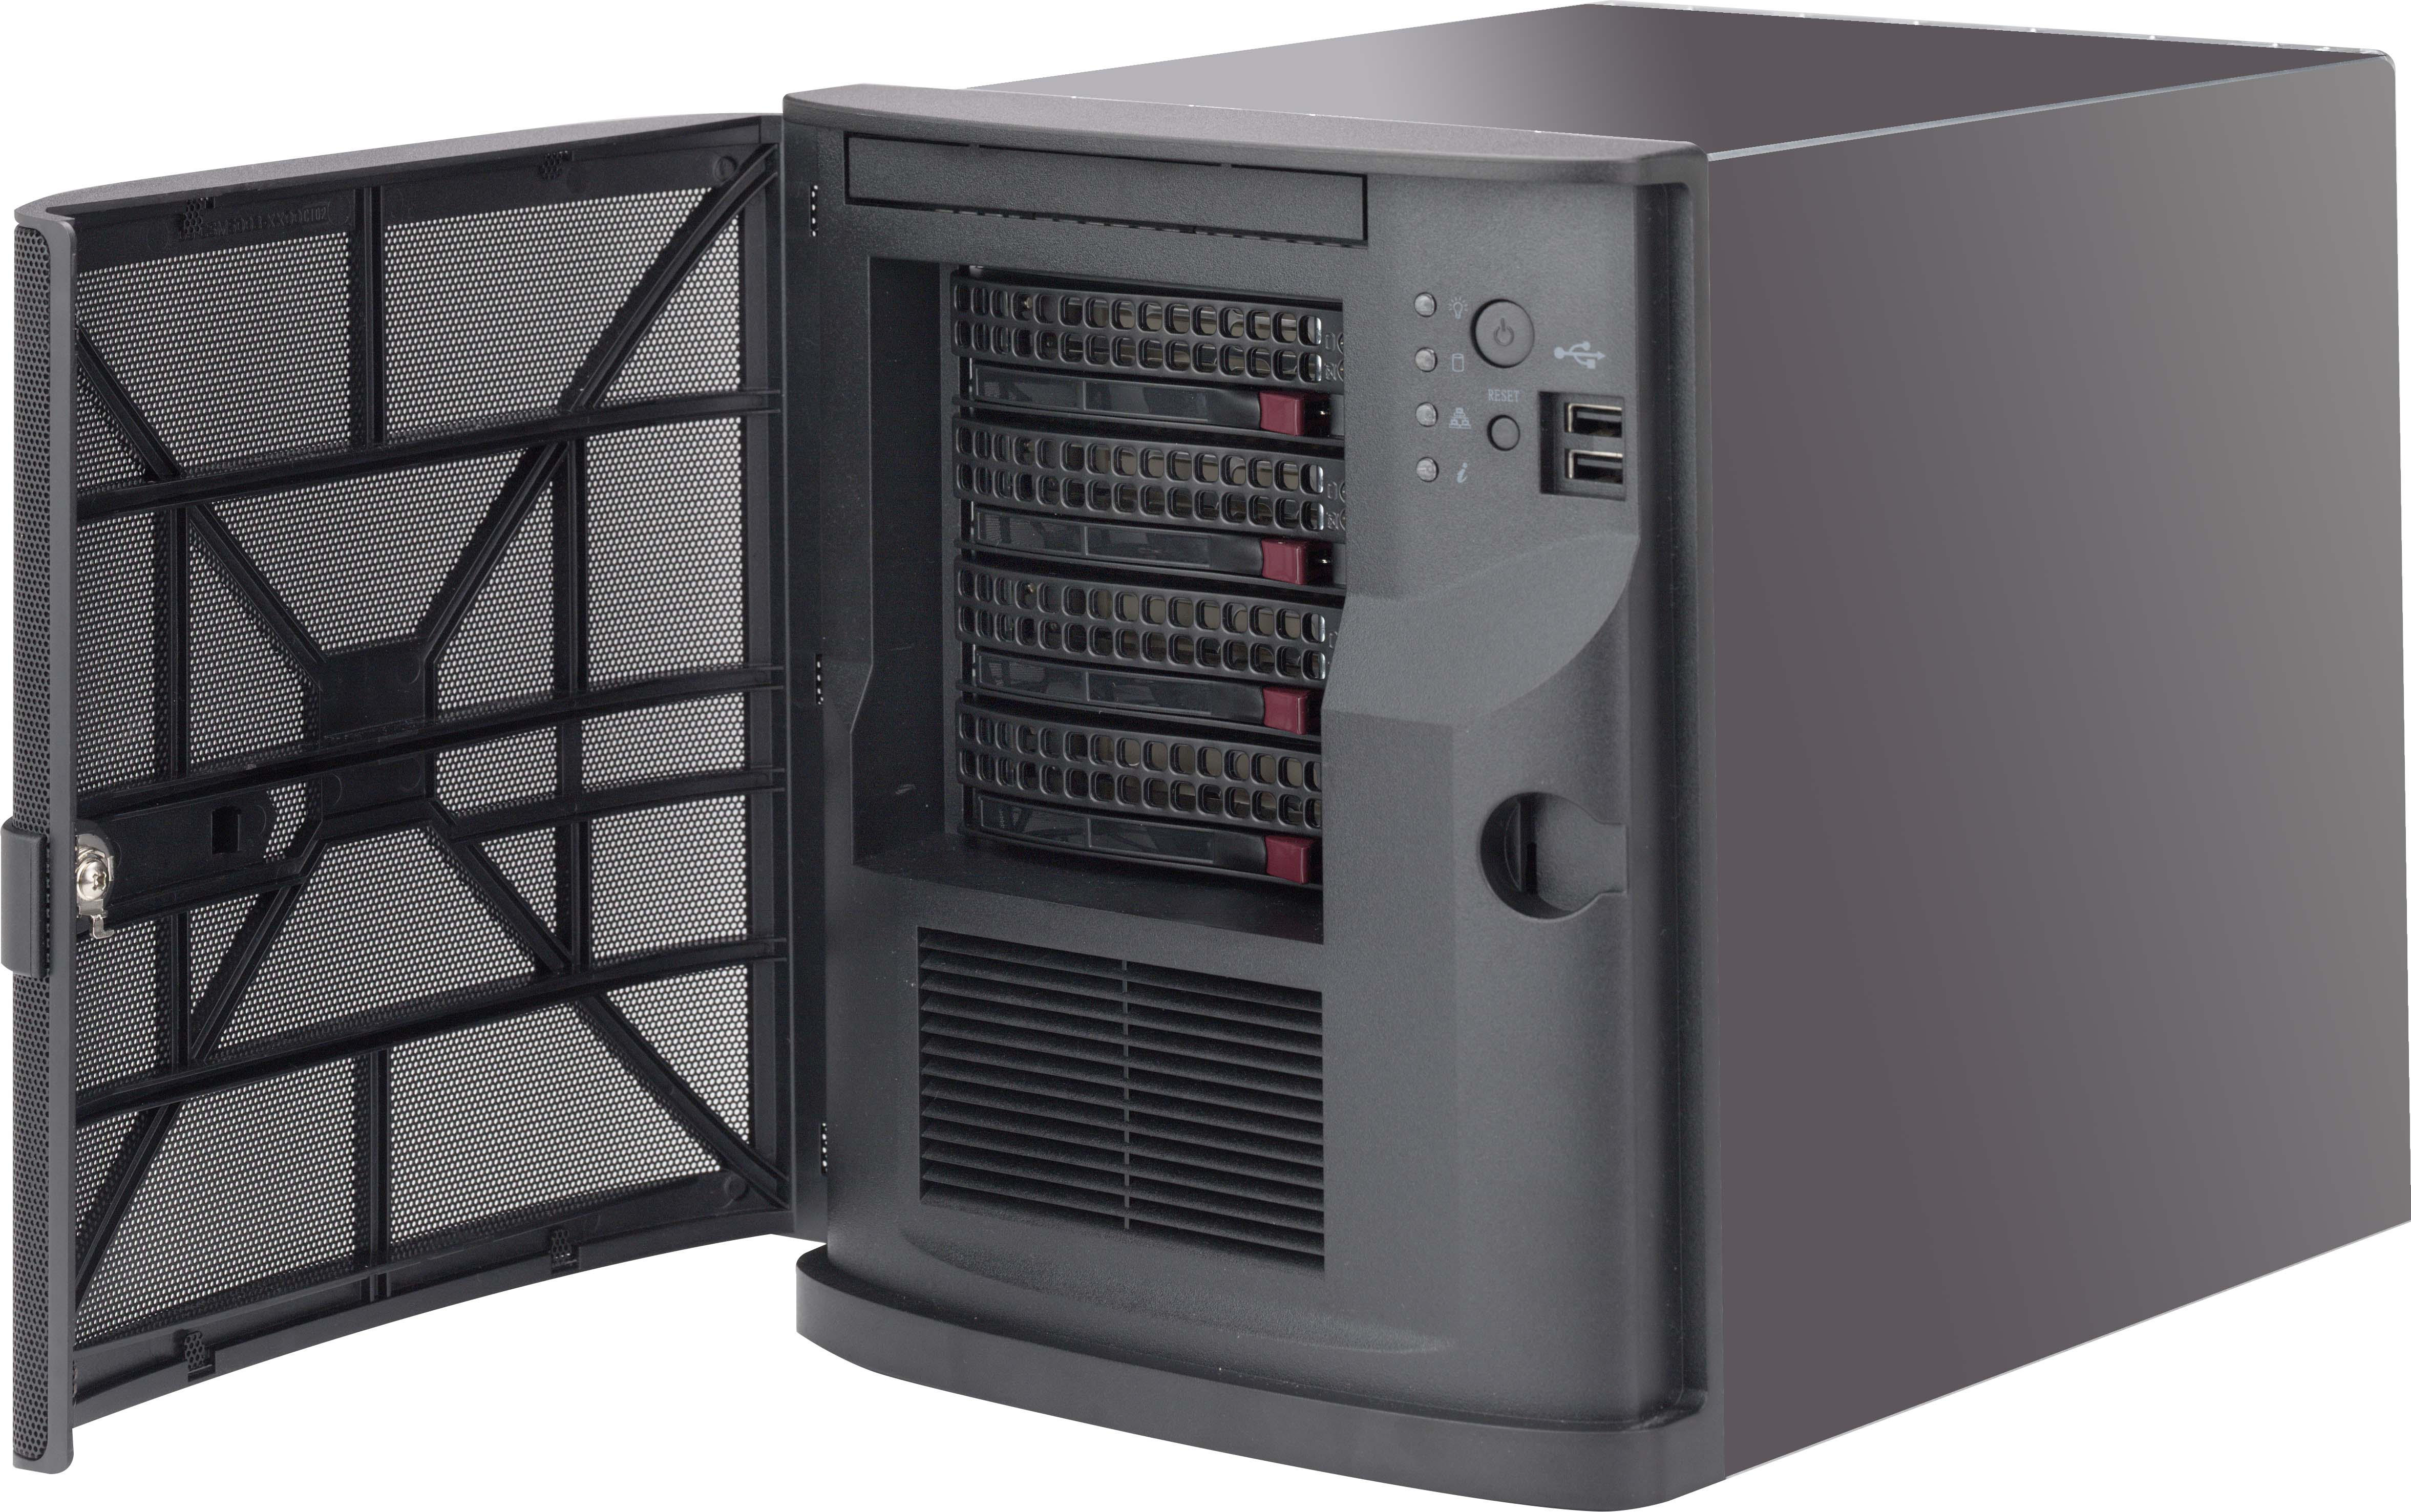 Sc721tq 250b Mini Tower Chassis Products Super